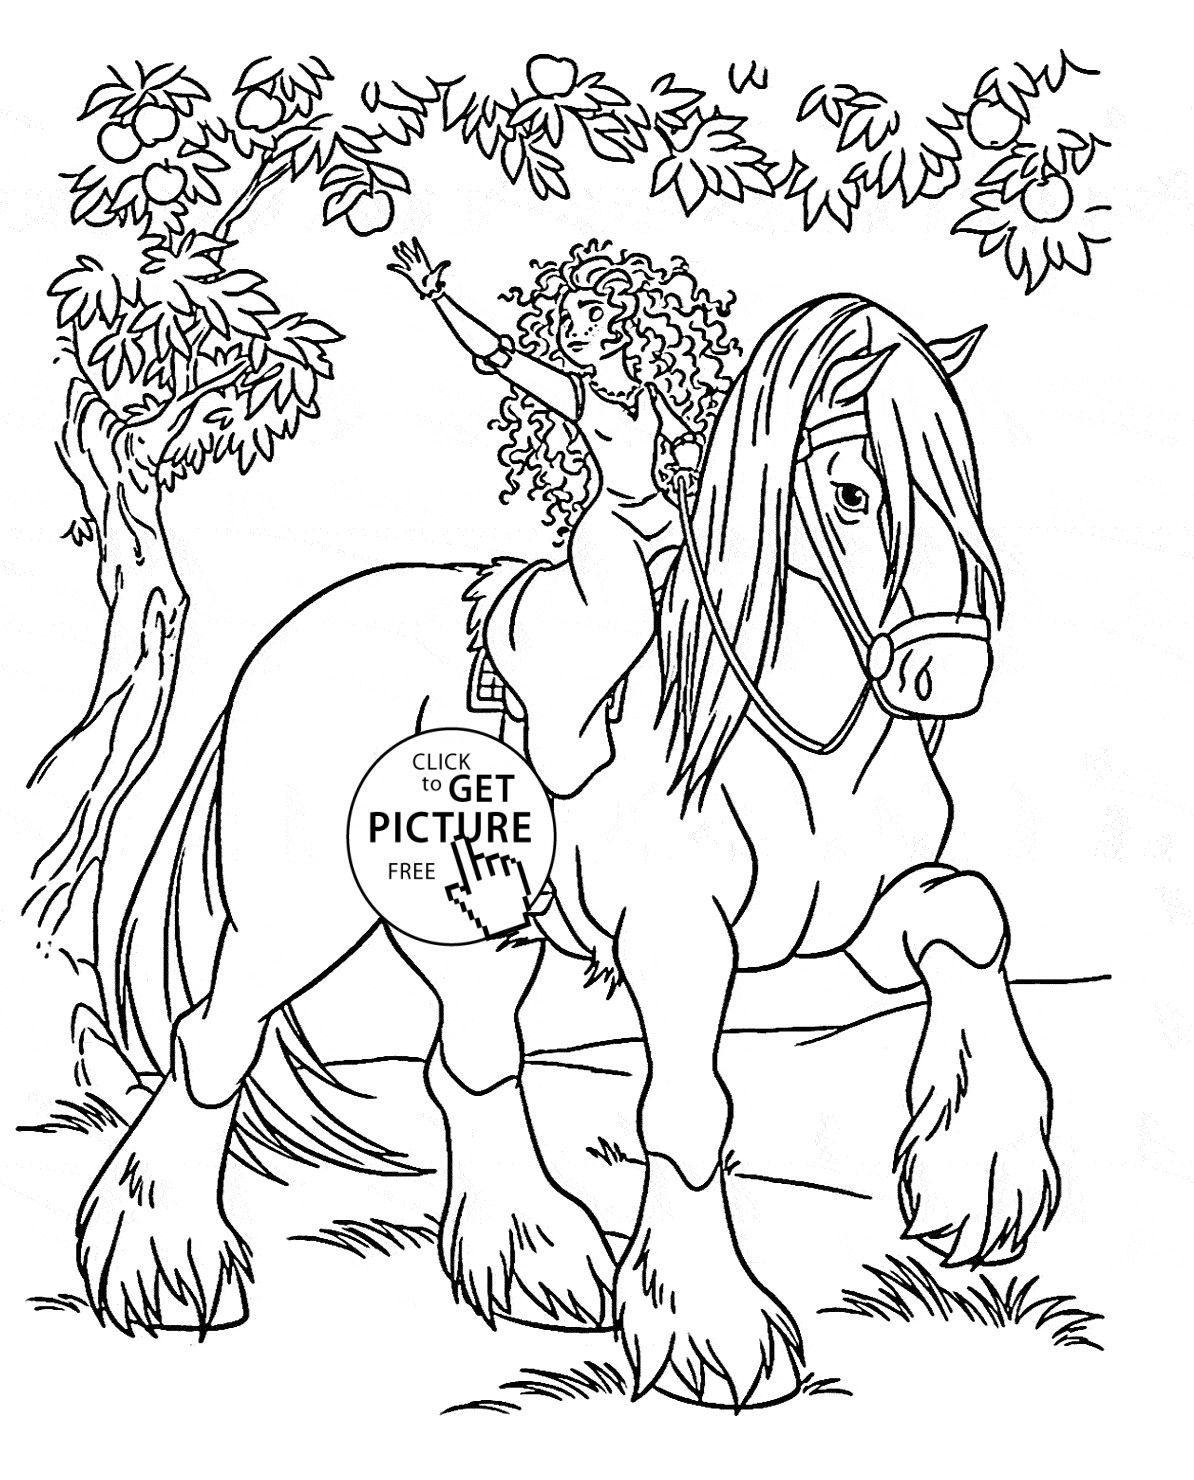 Princess Riding A Unicorn Coloring Page Horse coloring